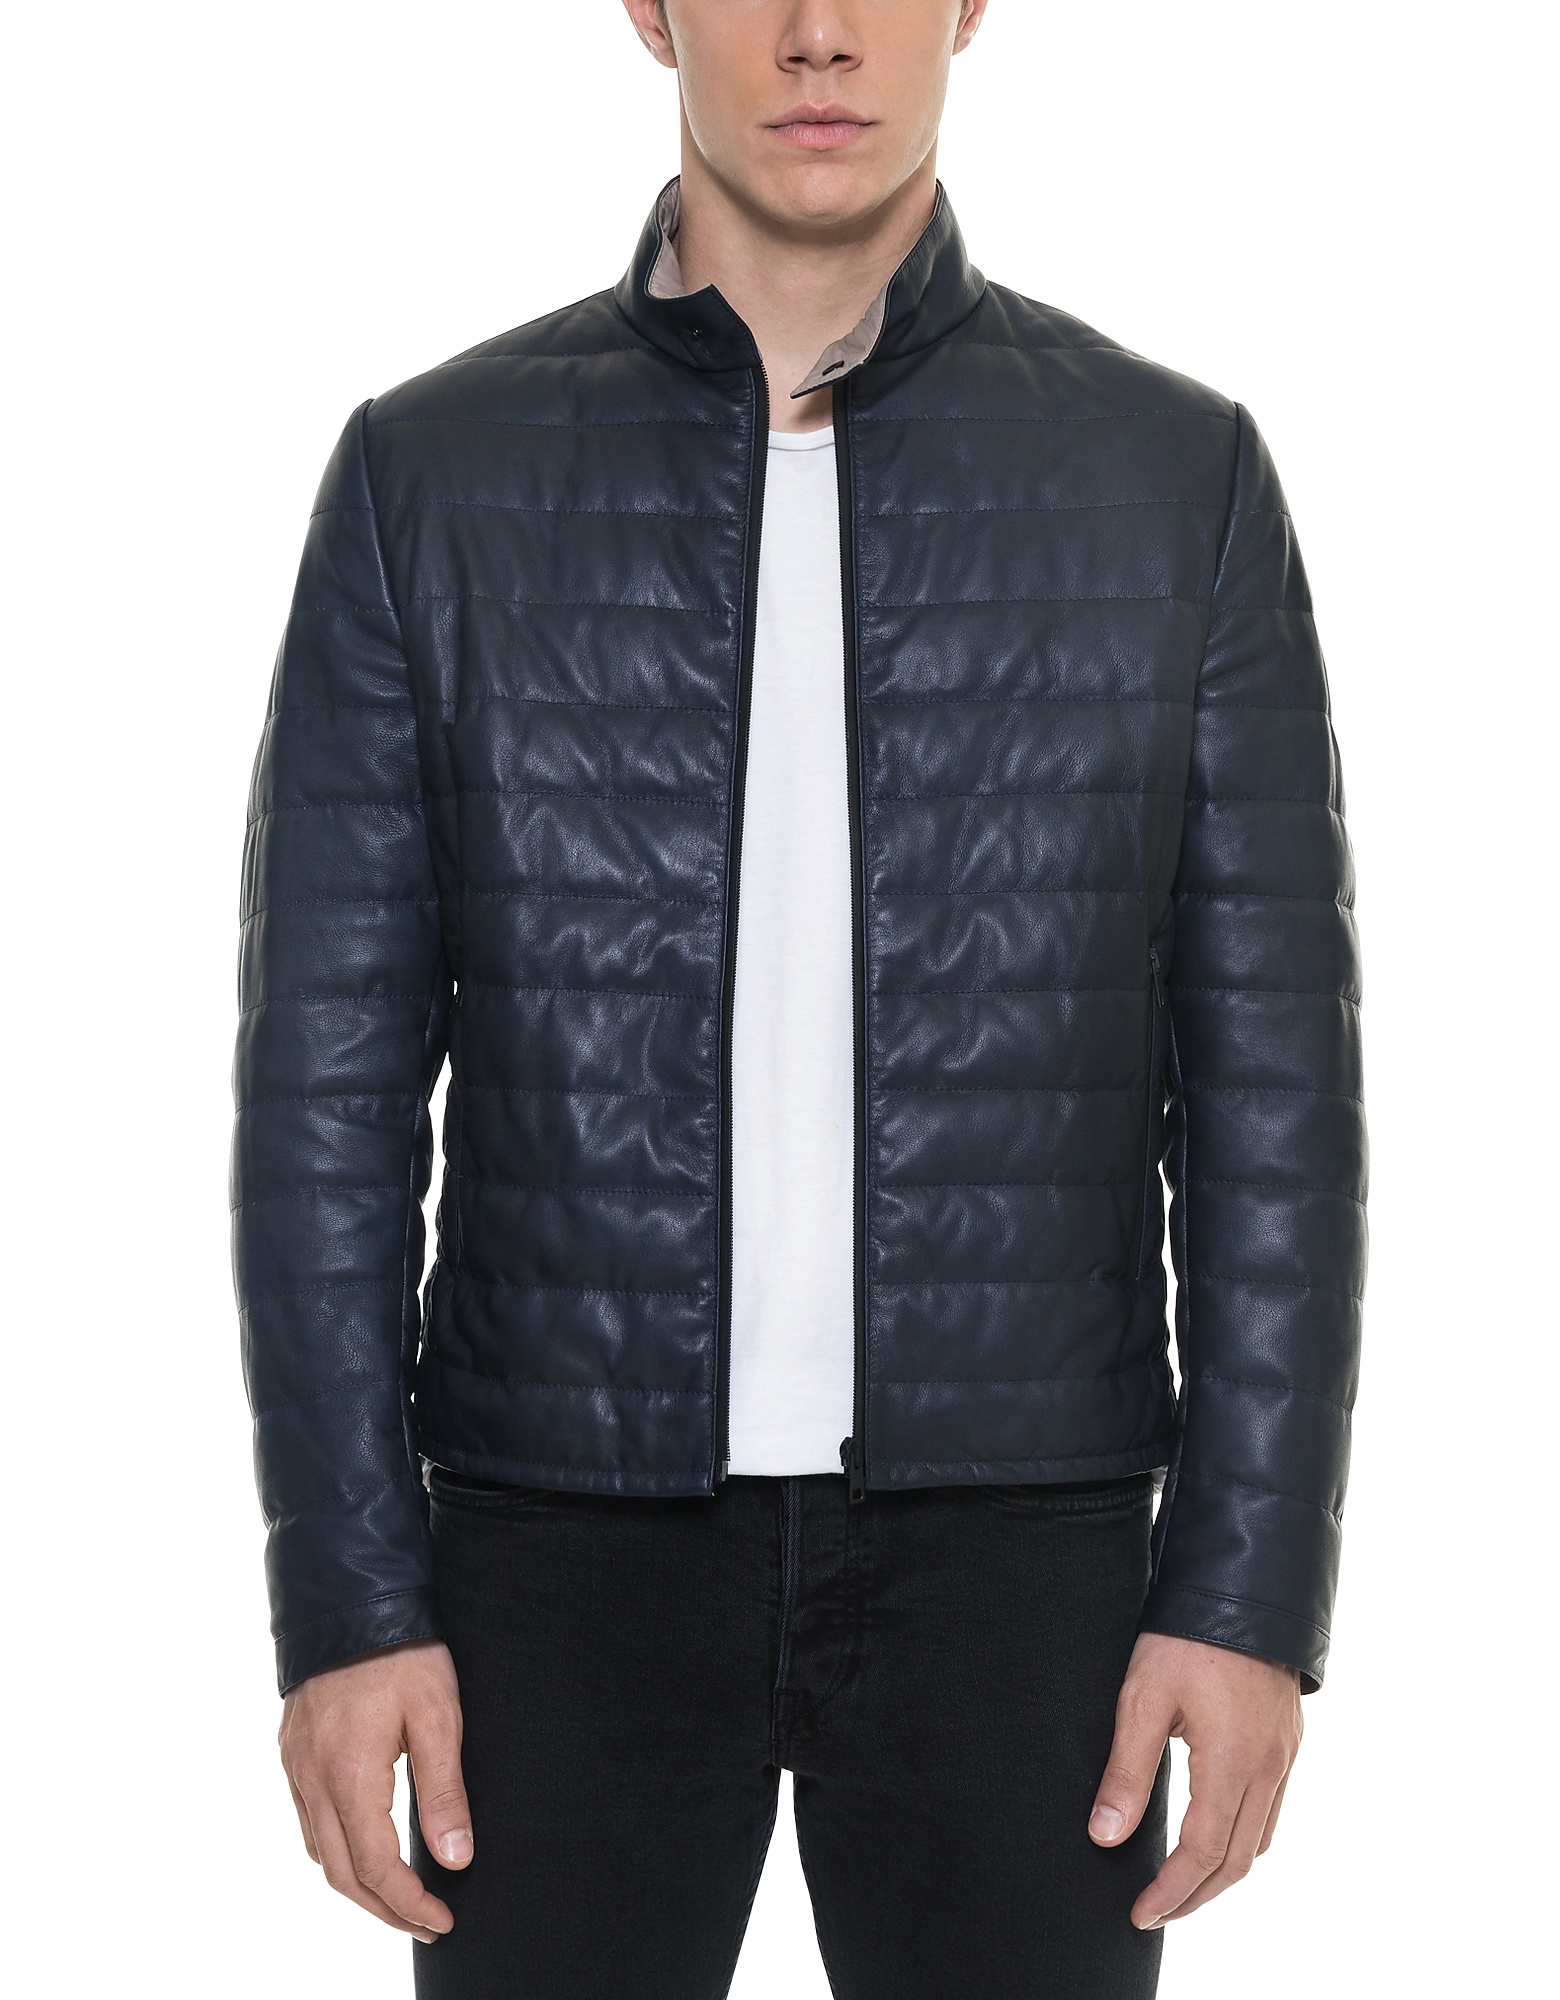 Image of Forzieri Designer Leather Jackets, Dark Blue Quilted Leather Men's Jacket